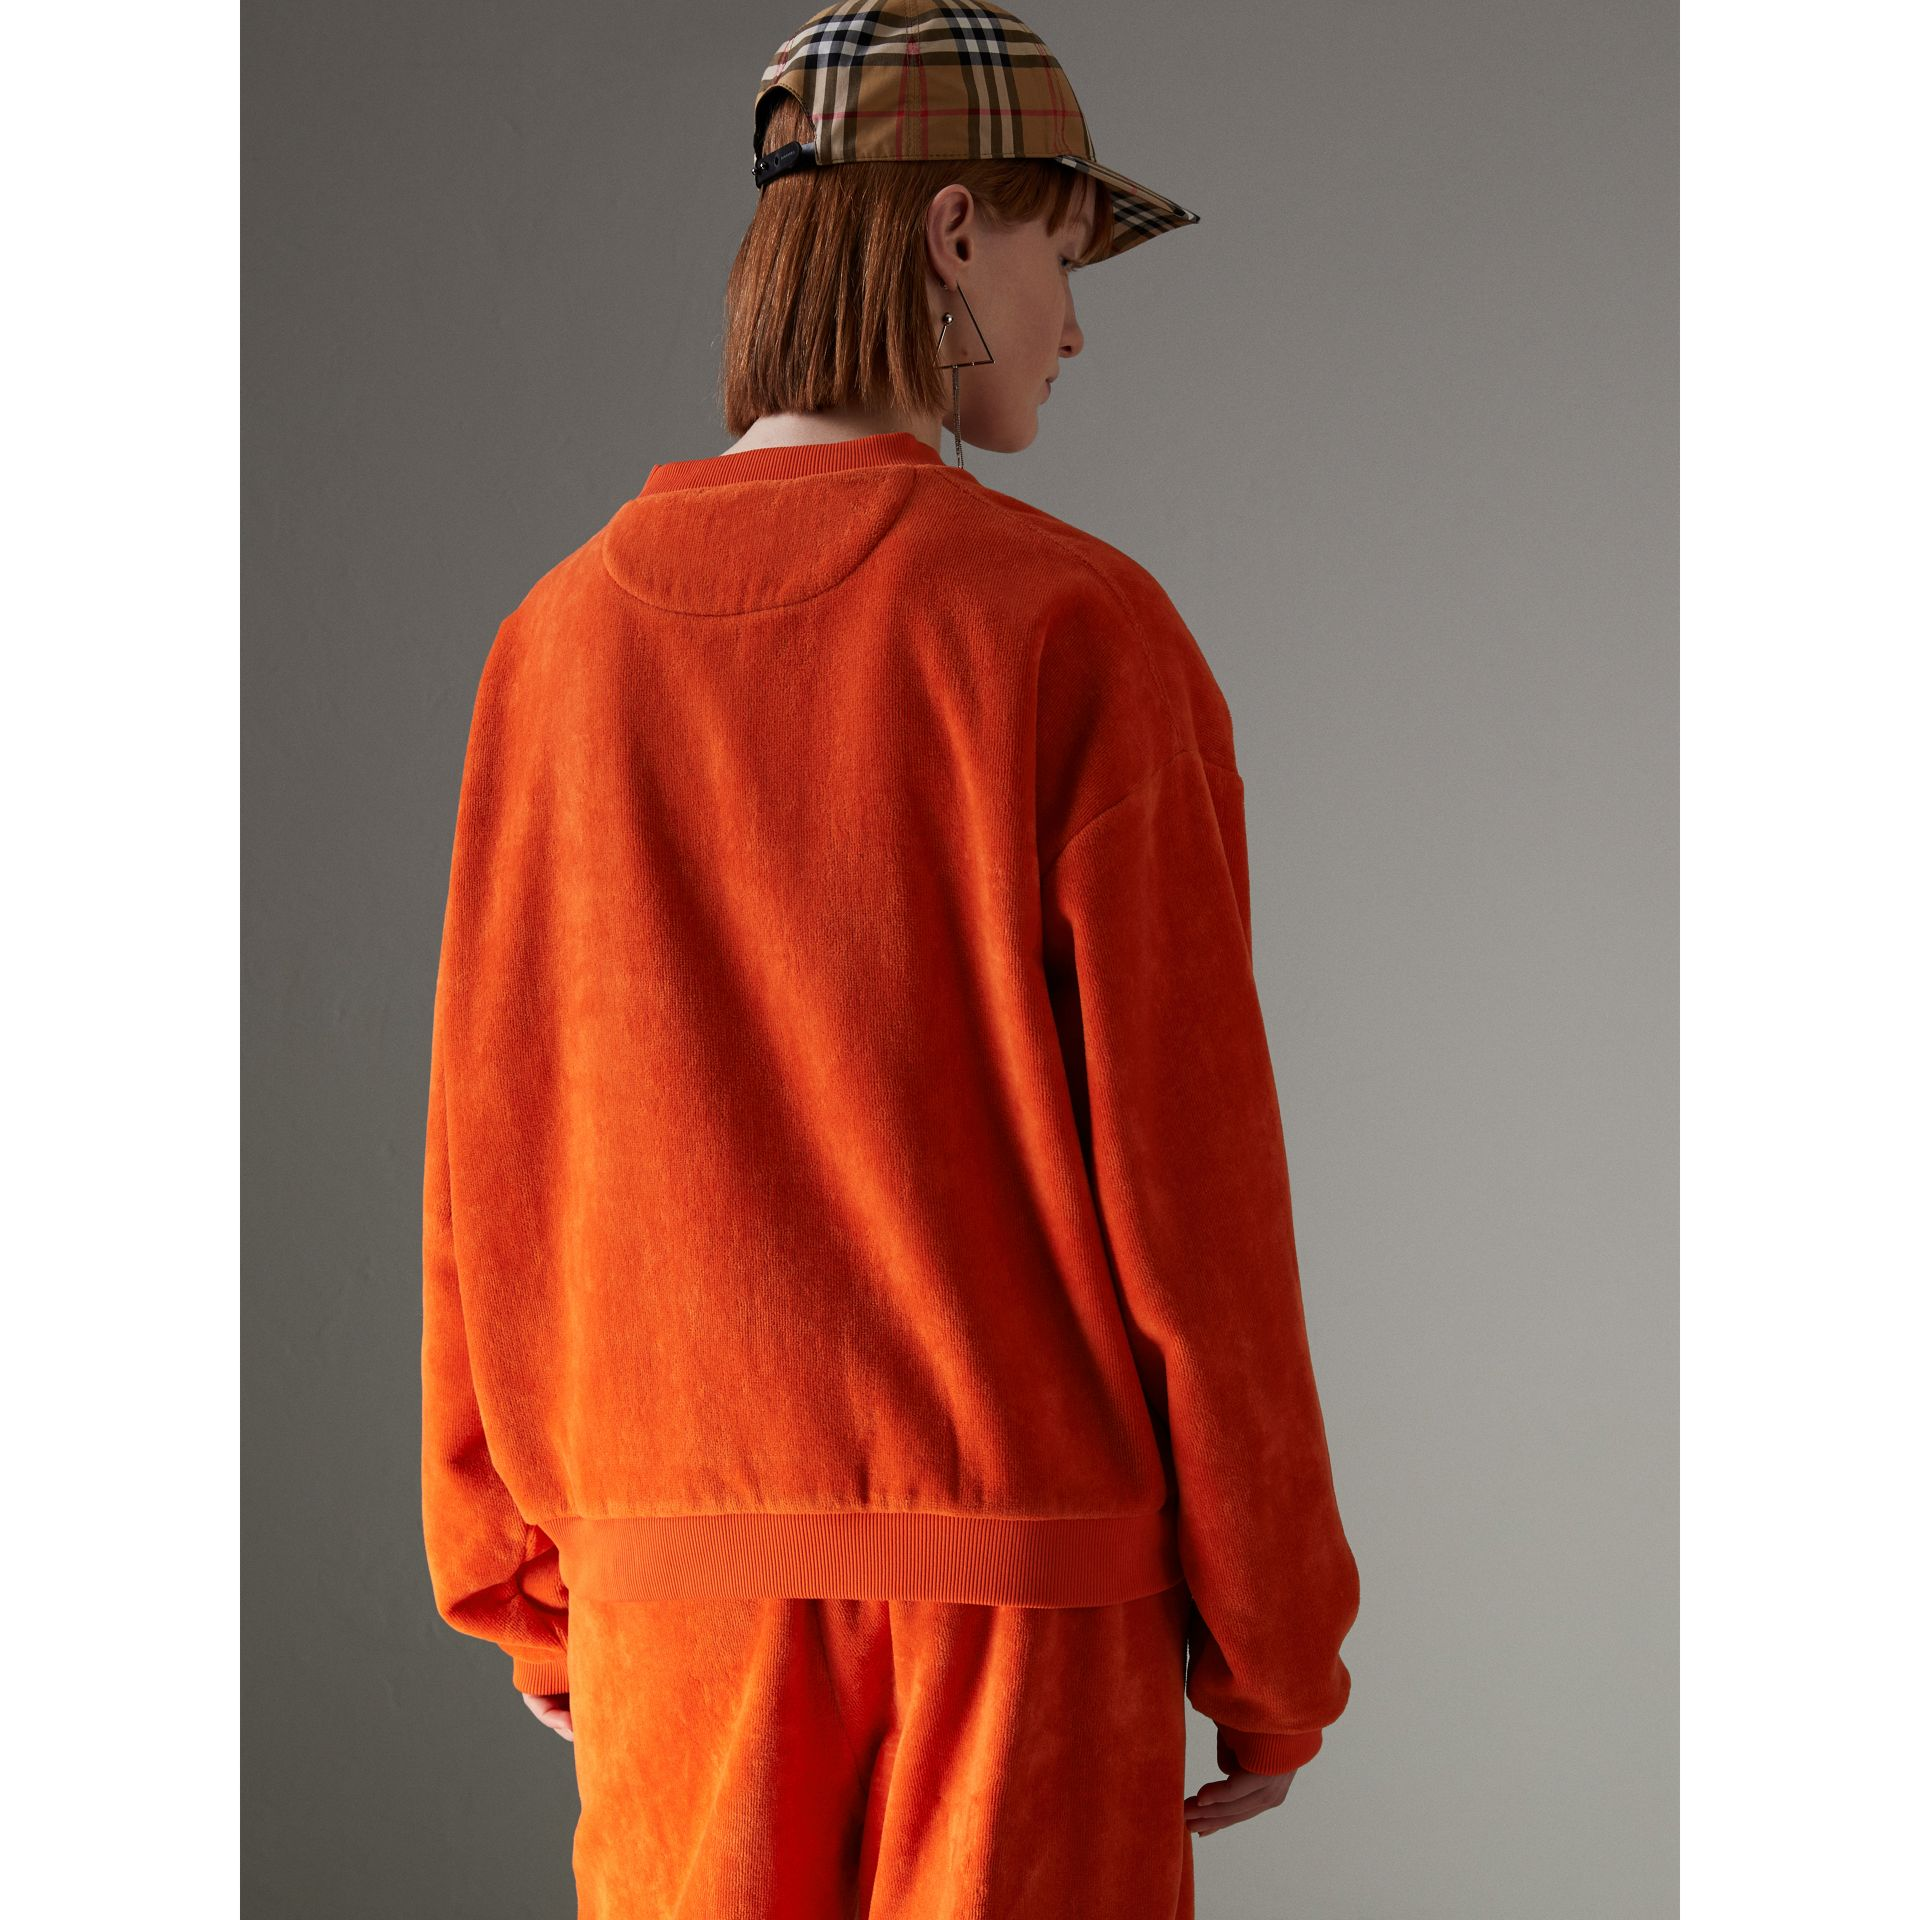 Archive Logo Towelling Sweatshirt in Tangerine - Women | Burberry United Kingdom - gallery image 2